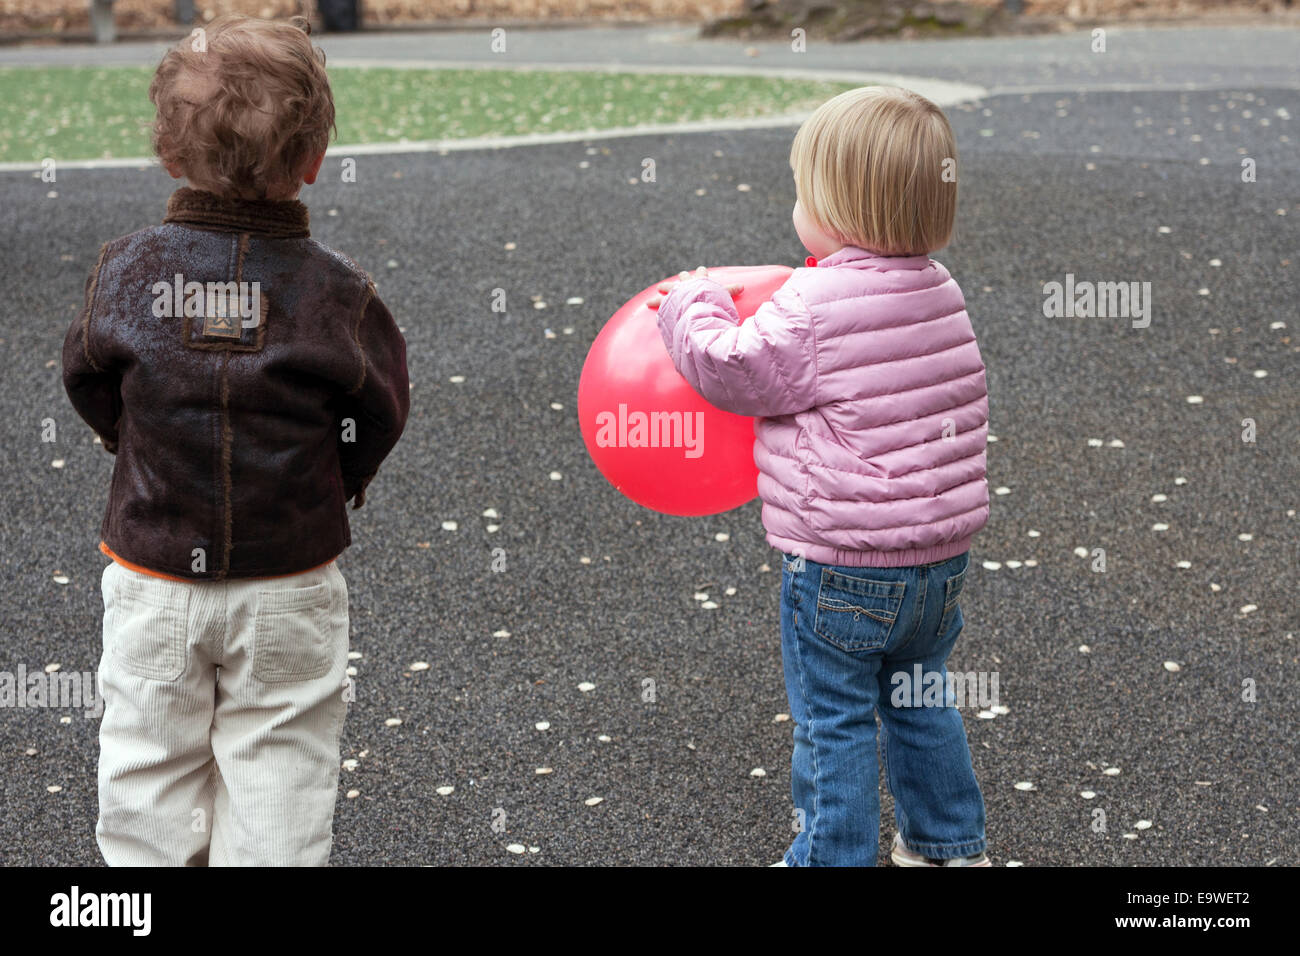 Two year olds play together in Central Park in New York City. - Stock Image